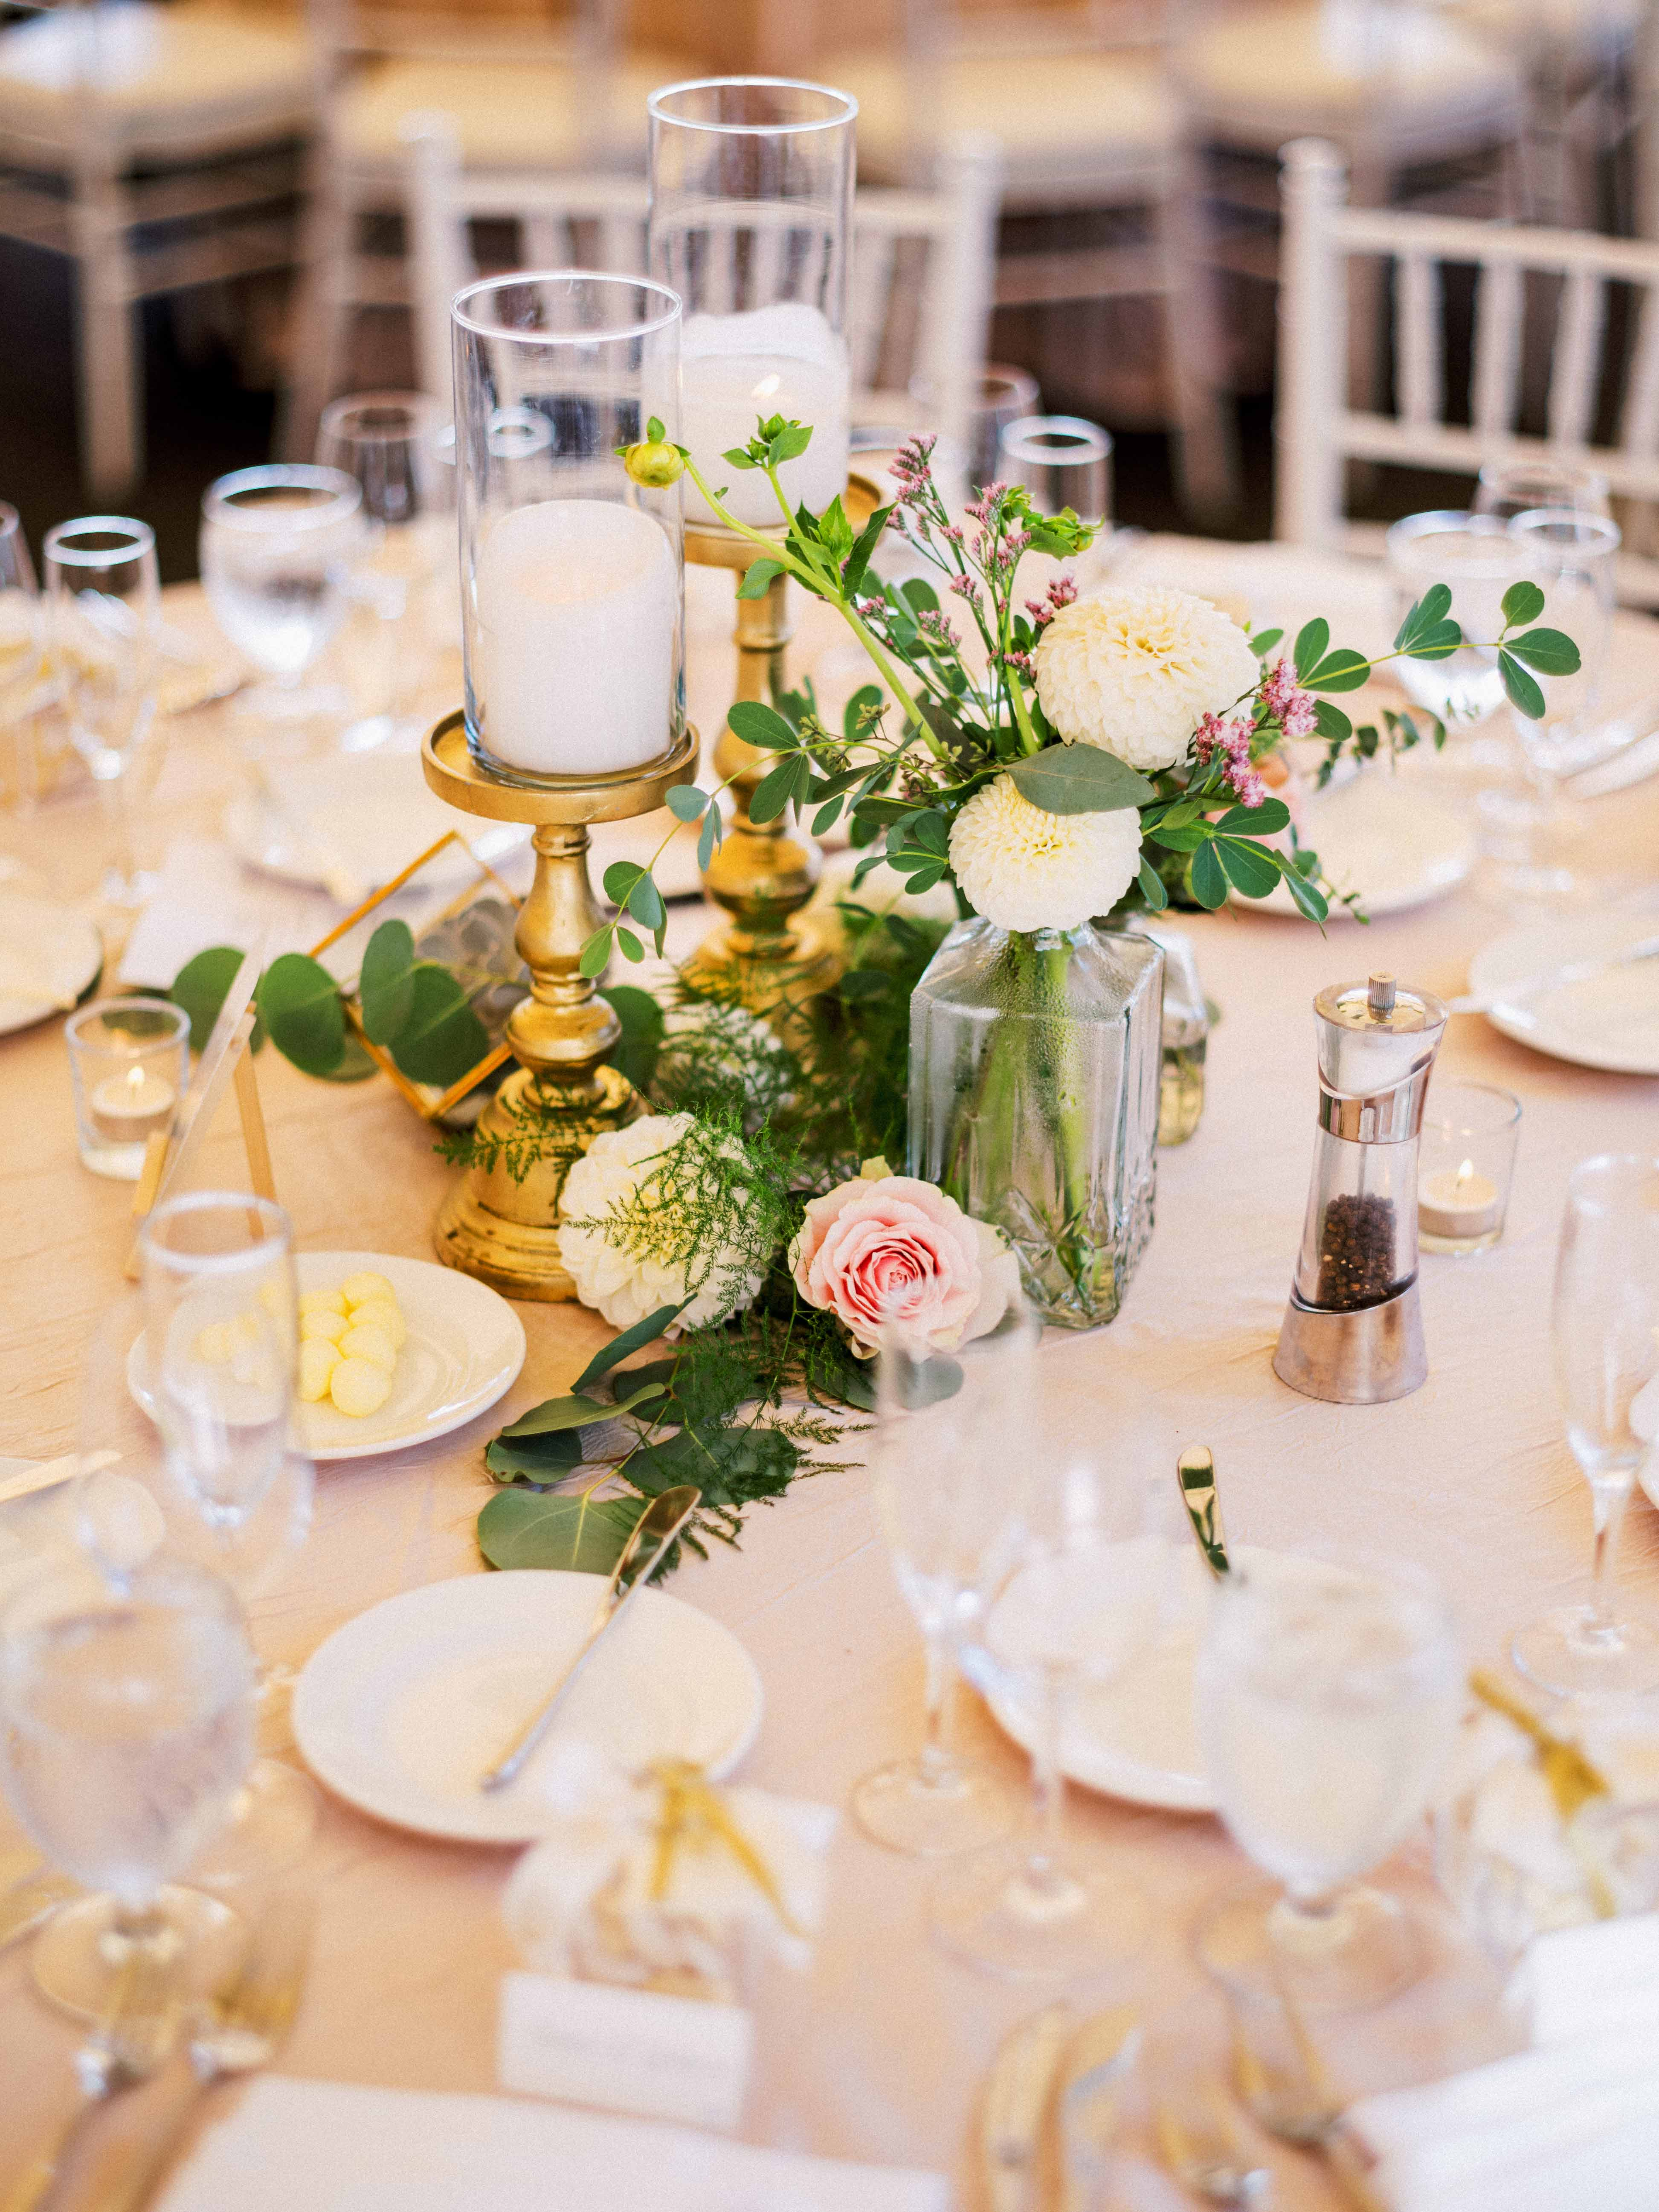 Composite style centerpiece with candles and greenery and blooms -  Woodmark Hotel Wedding by Flora Nova Design Seattle